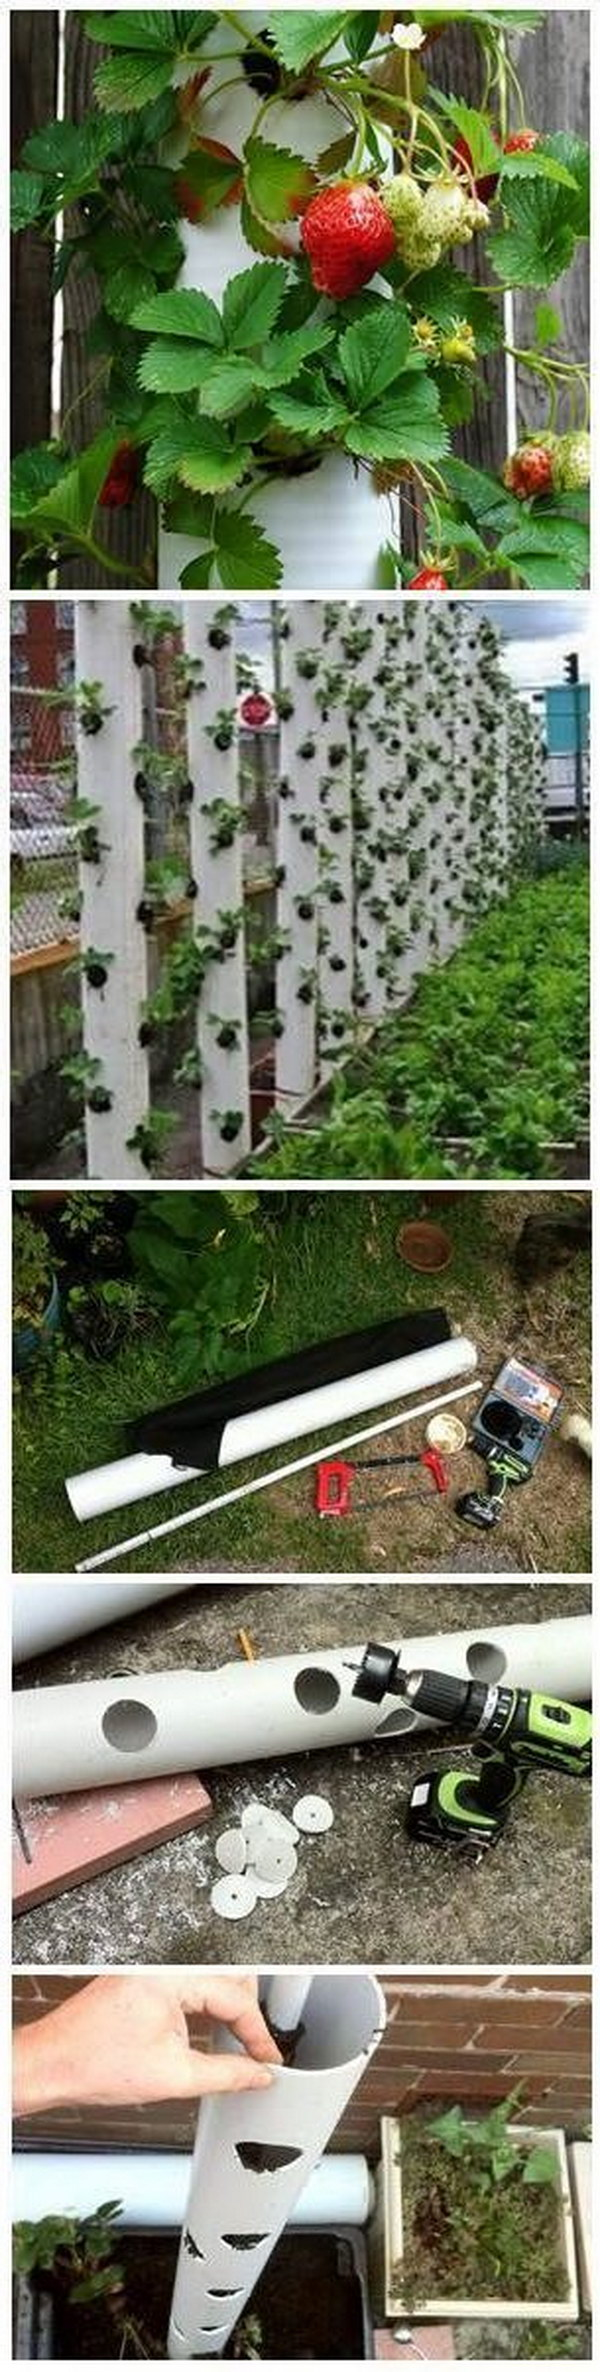 DIY Strawberry Vertical Garden Made From PVC Tubes